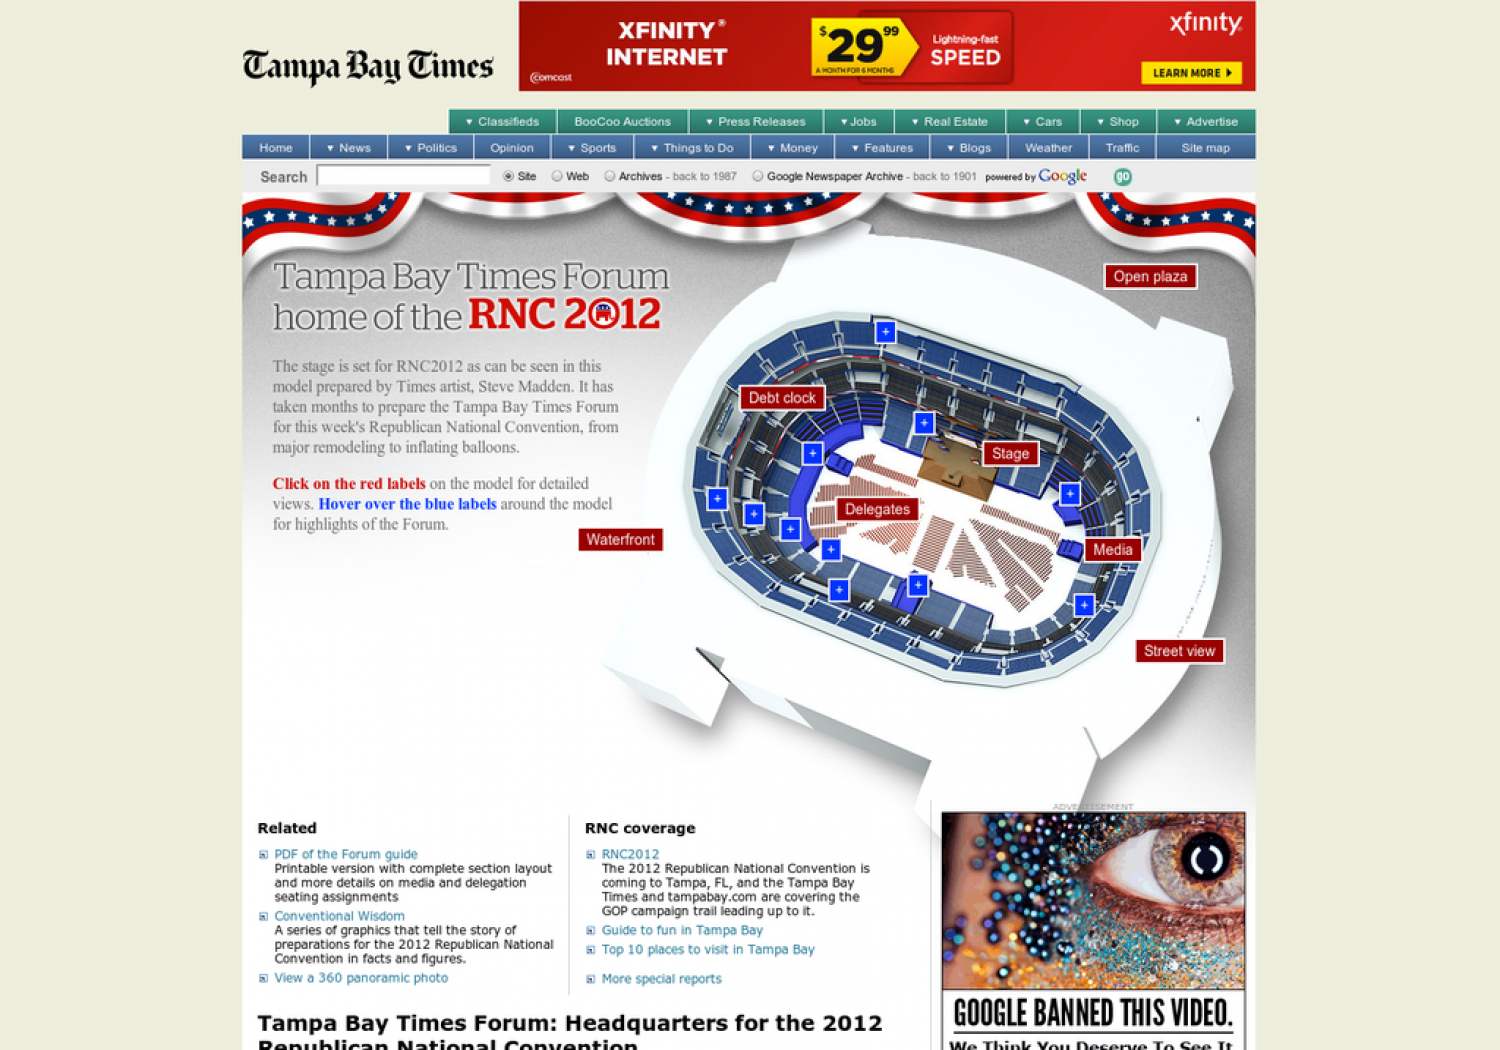 Tampa Bay Times Forum: Headquarters for the 2012 Republican National Convention Infographic